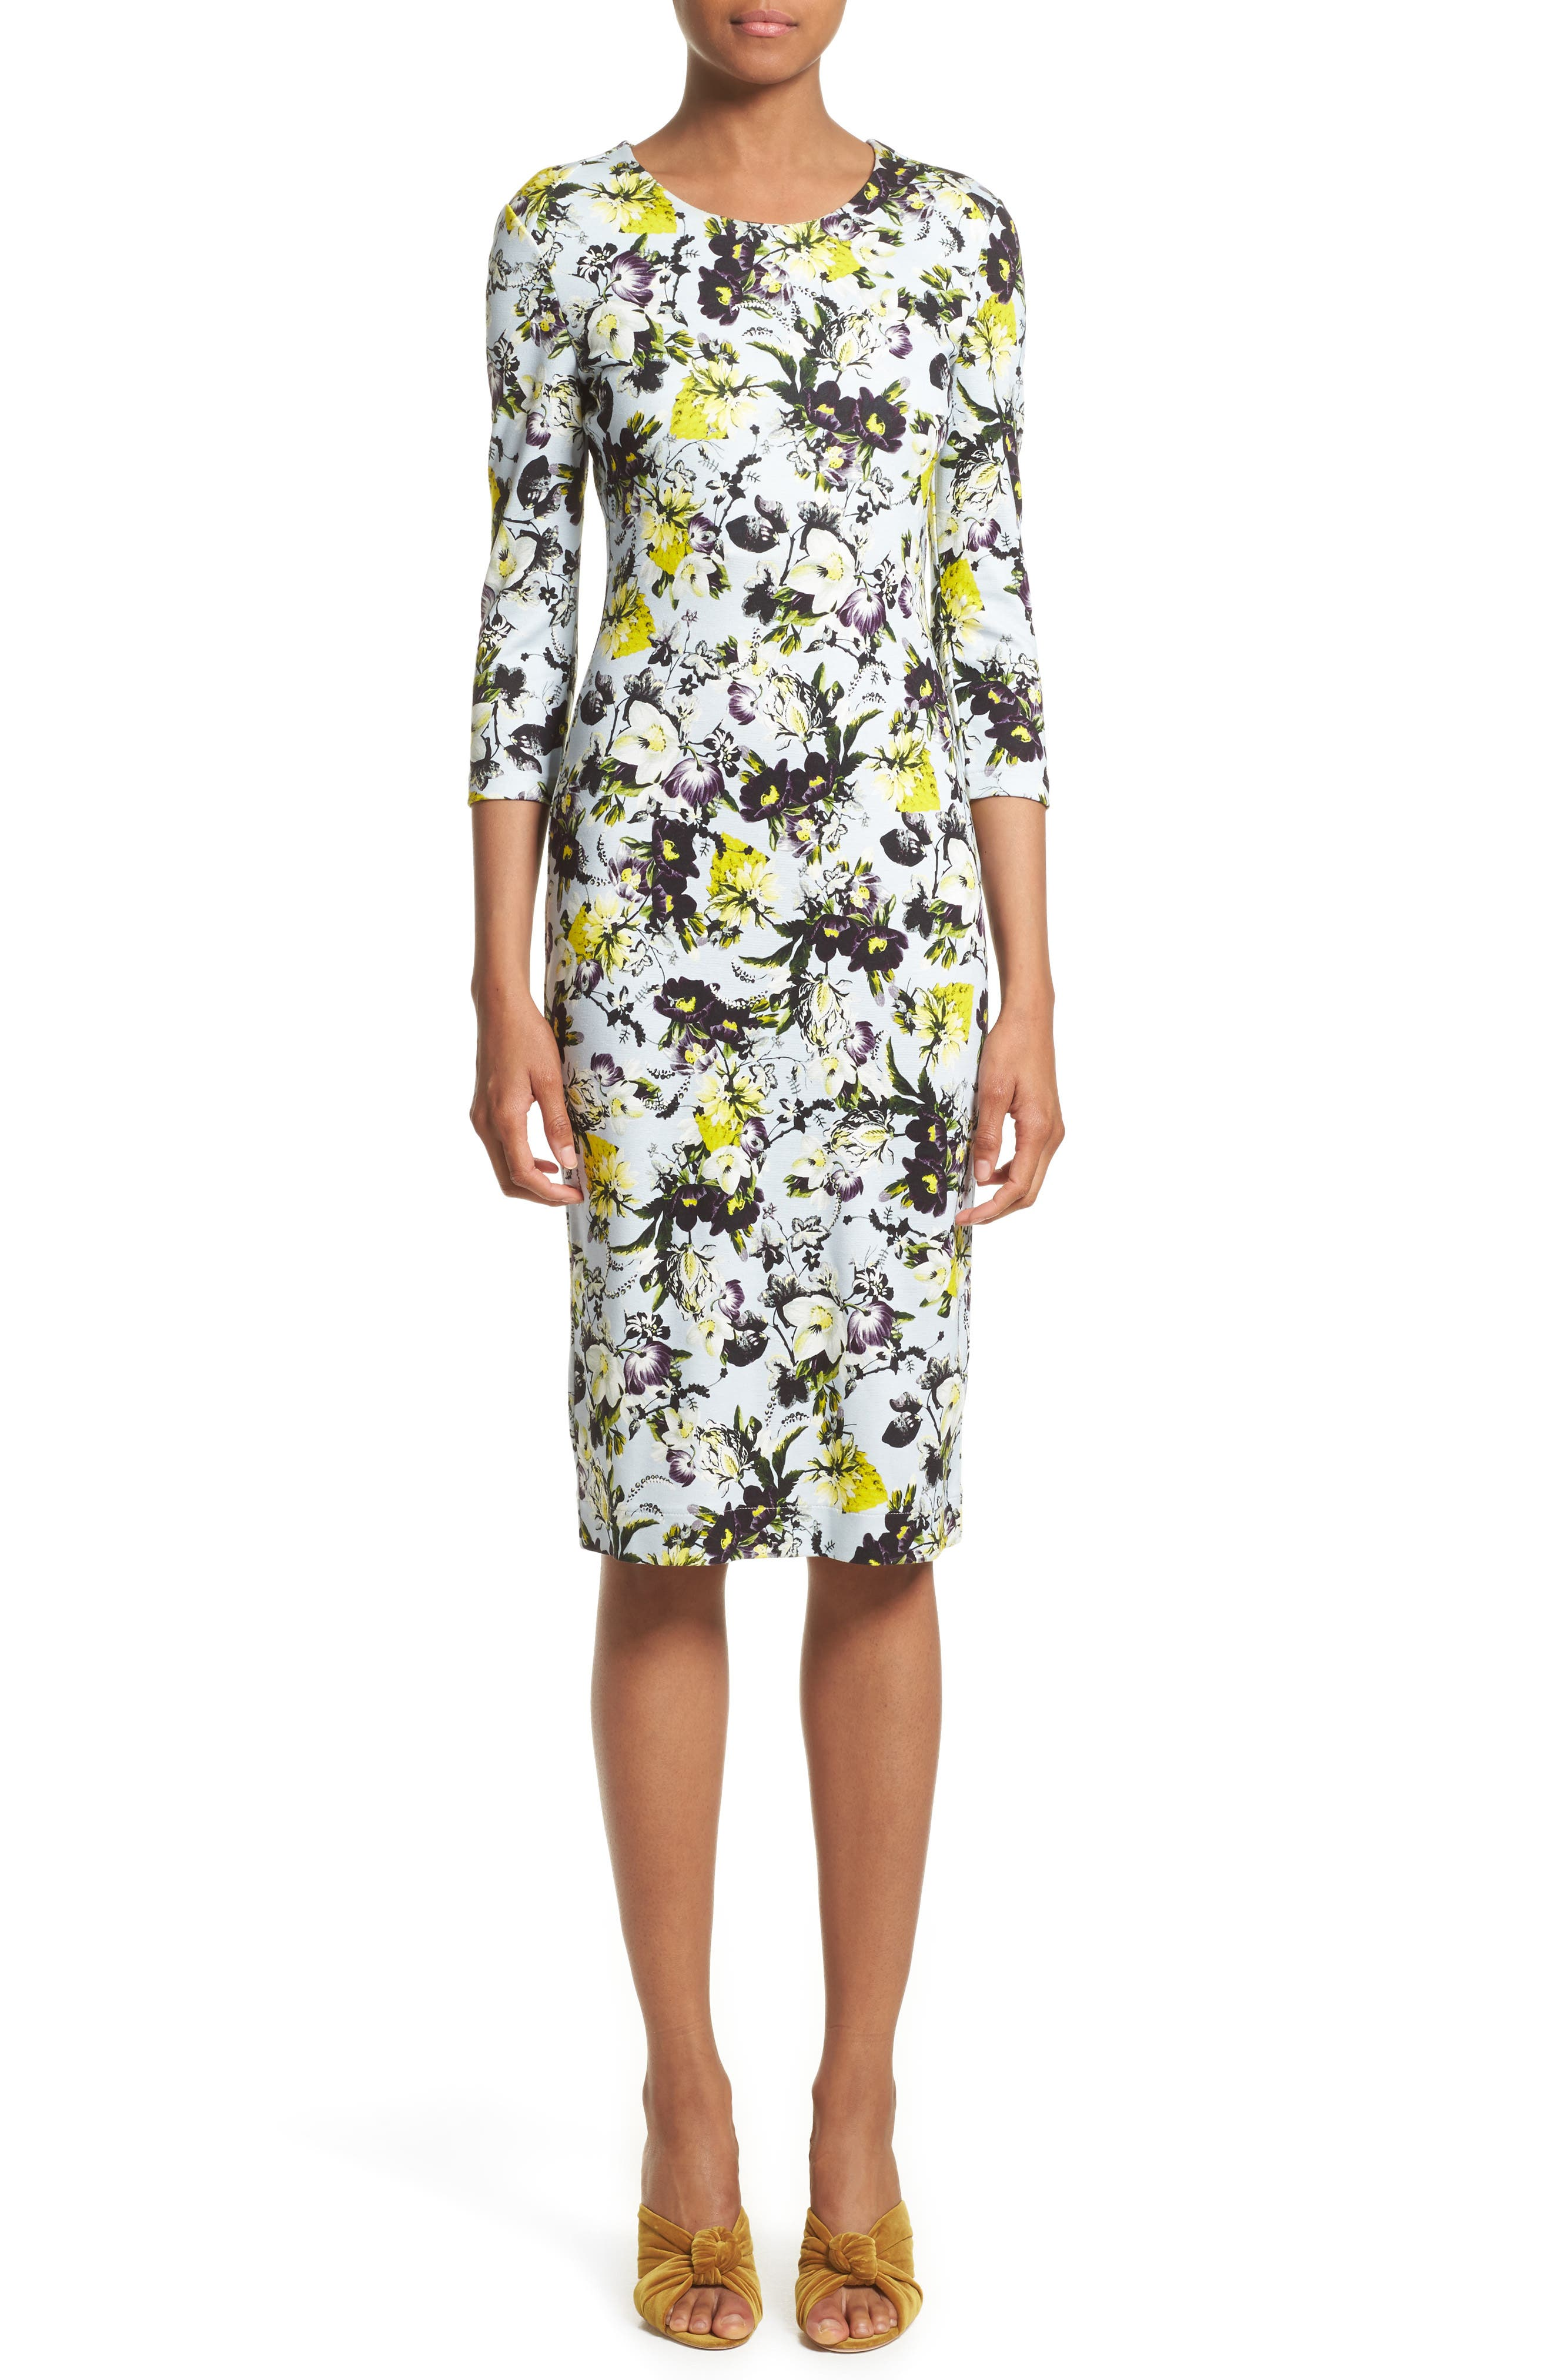 Erdem Floral Jersey Sheath Dress